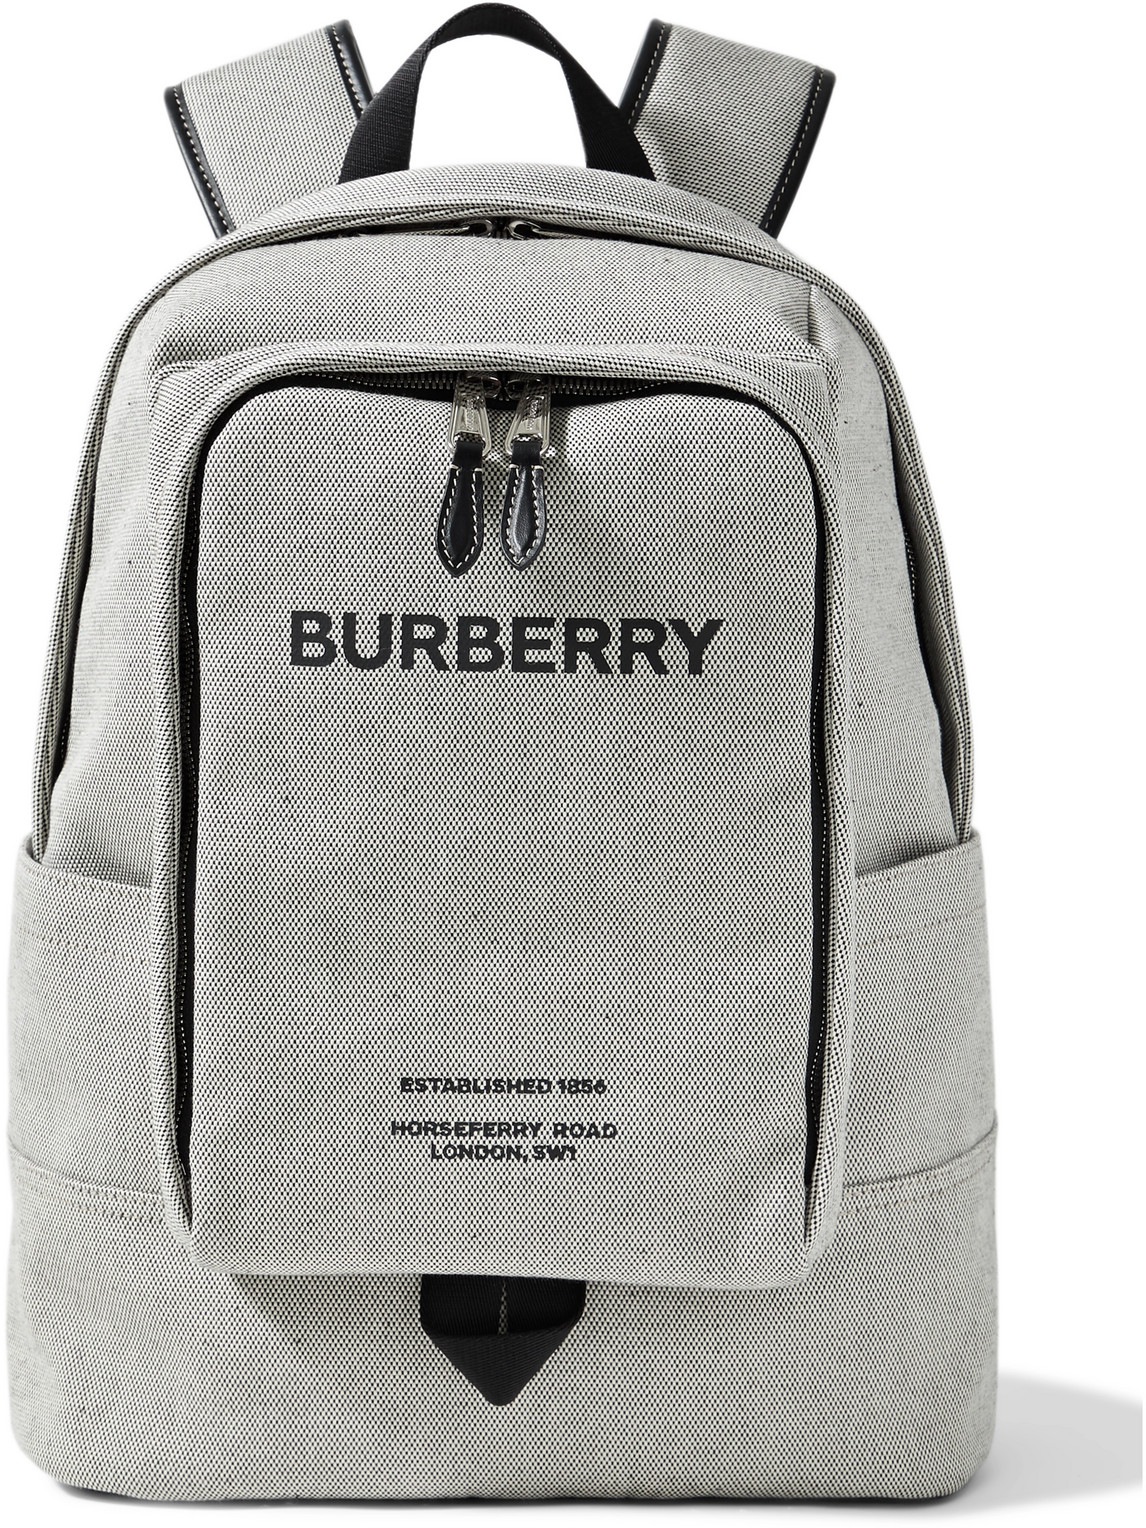 Burberry LOGO-PRINT LEATHER-TRIMMED CANVAS BACKPACK